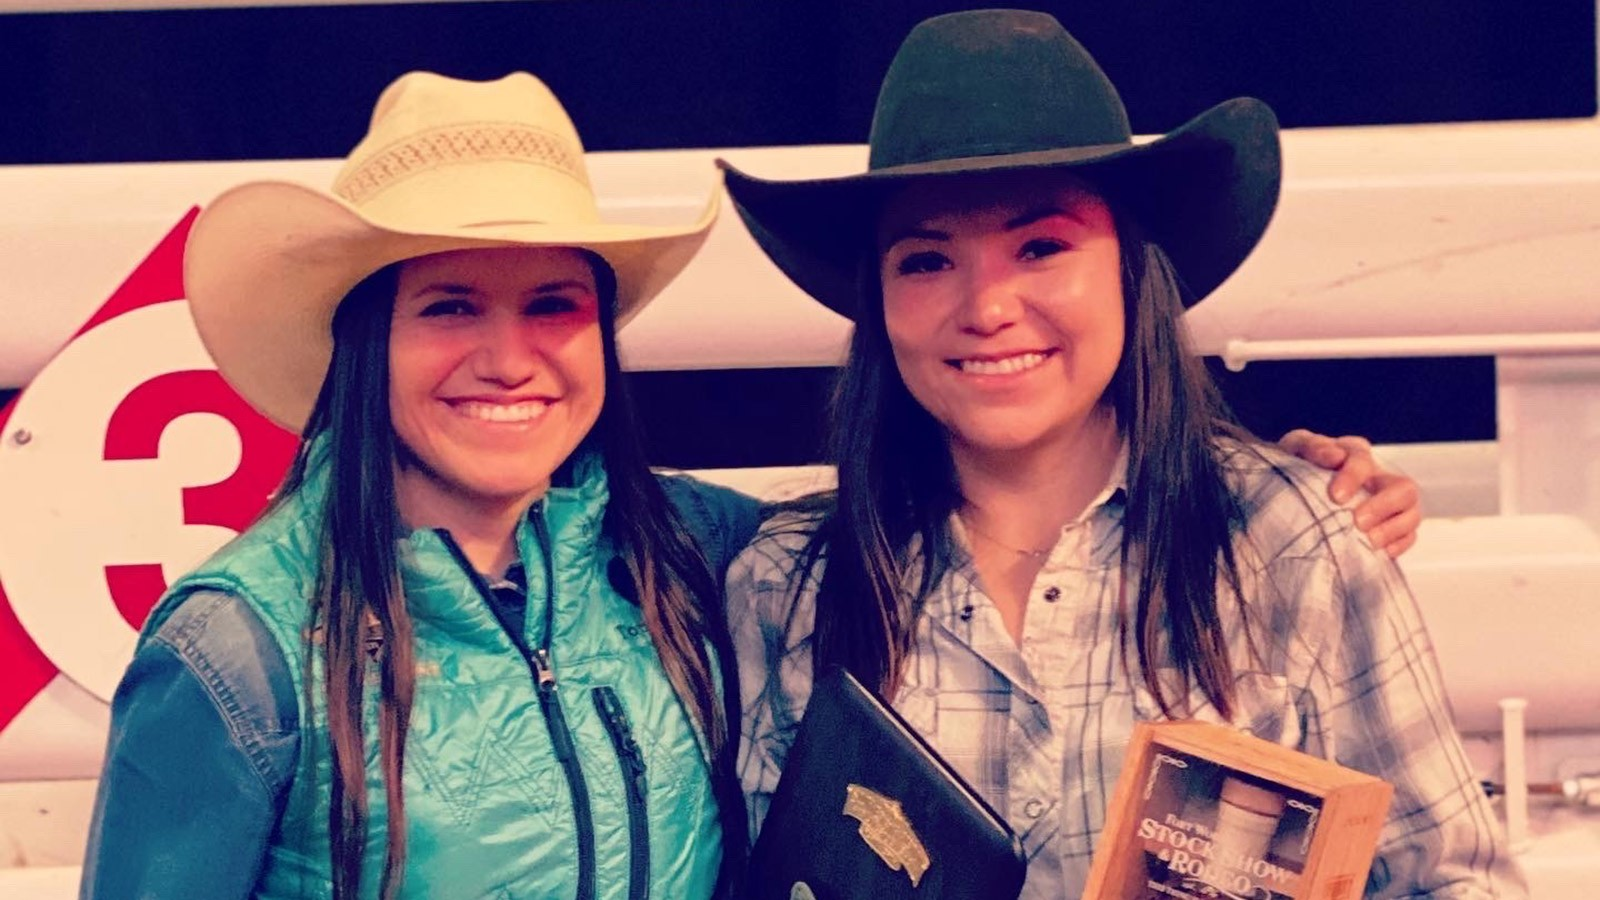 USU alumna Cassie Bahe (right) and her sister, Anna.